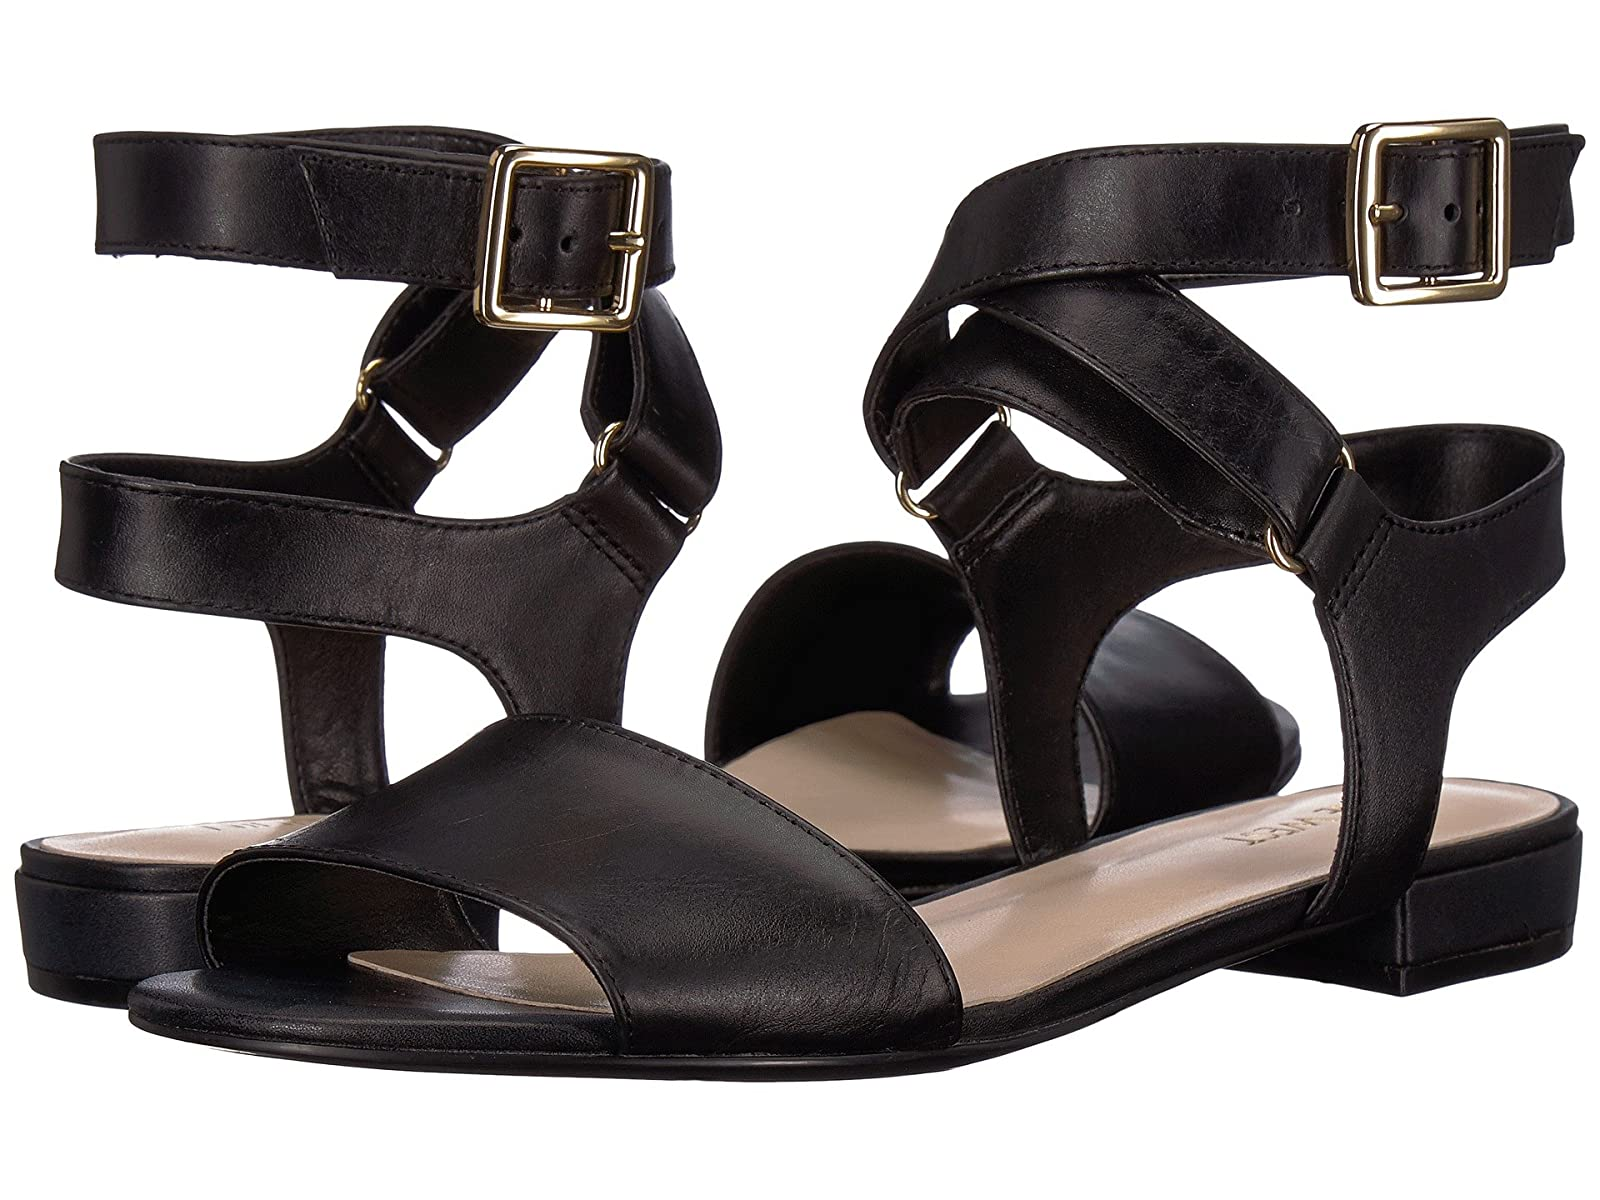 Nine West Inch SandalCheap and distinctive eye-catching shoes